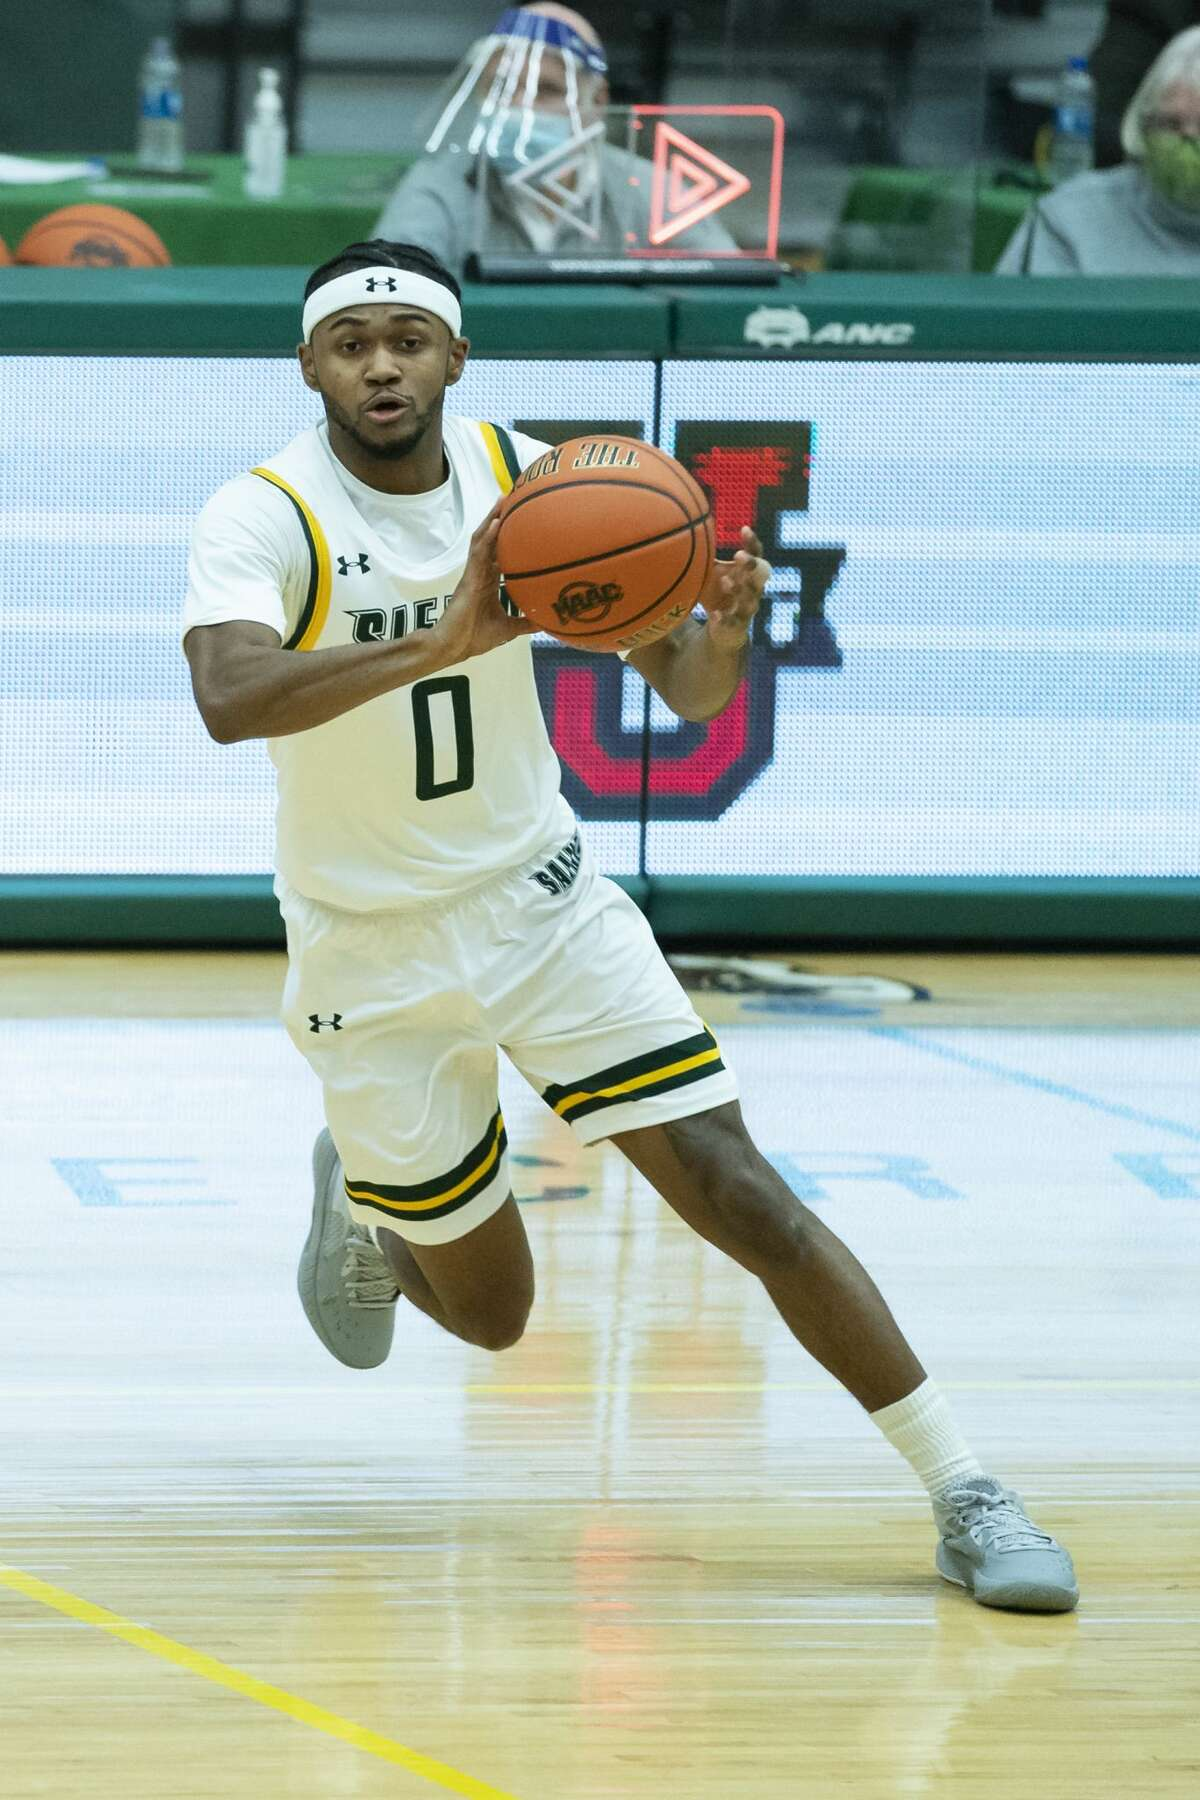 Siena graduate guard Nick Hopkins averaged 7.8 points per game in his first season with the Saints after transferring from Belmont University. (Gregory Fisher/Icon Sportswire)